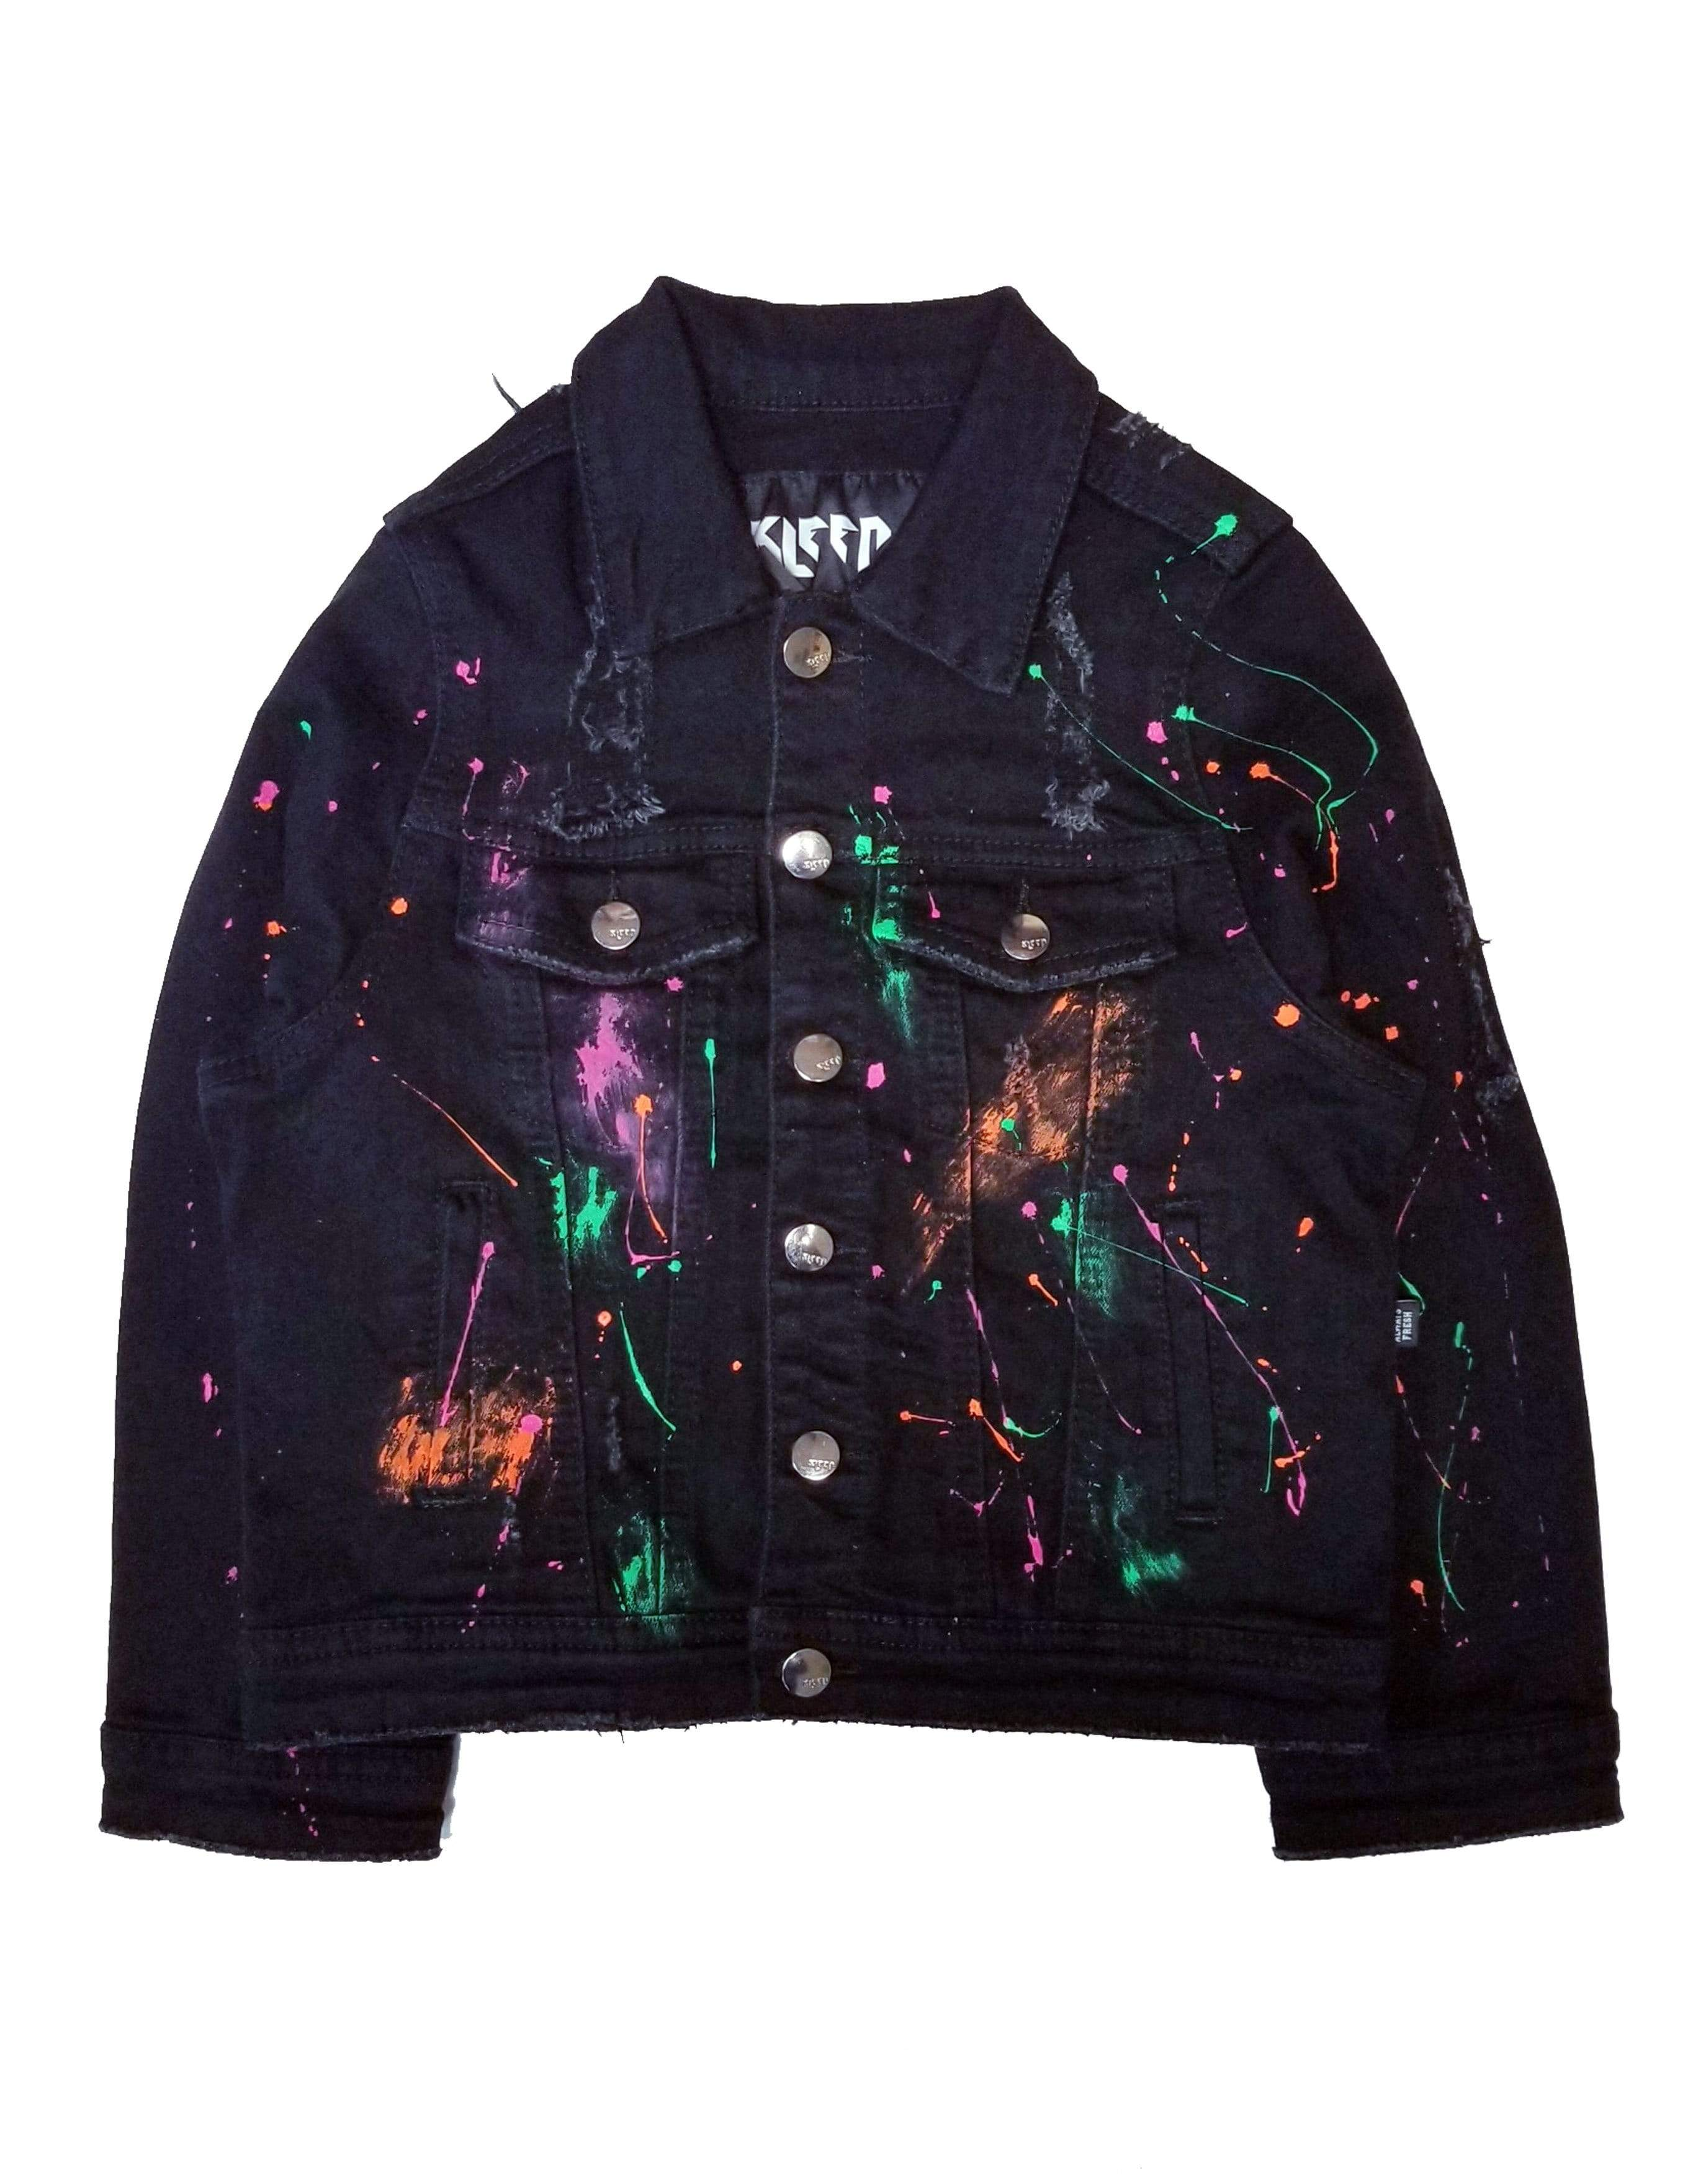 KLEEP Kid's Jacket Erie Kids Limited Denim Jacket